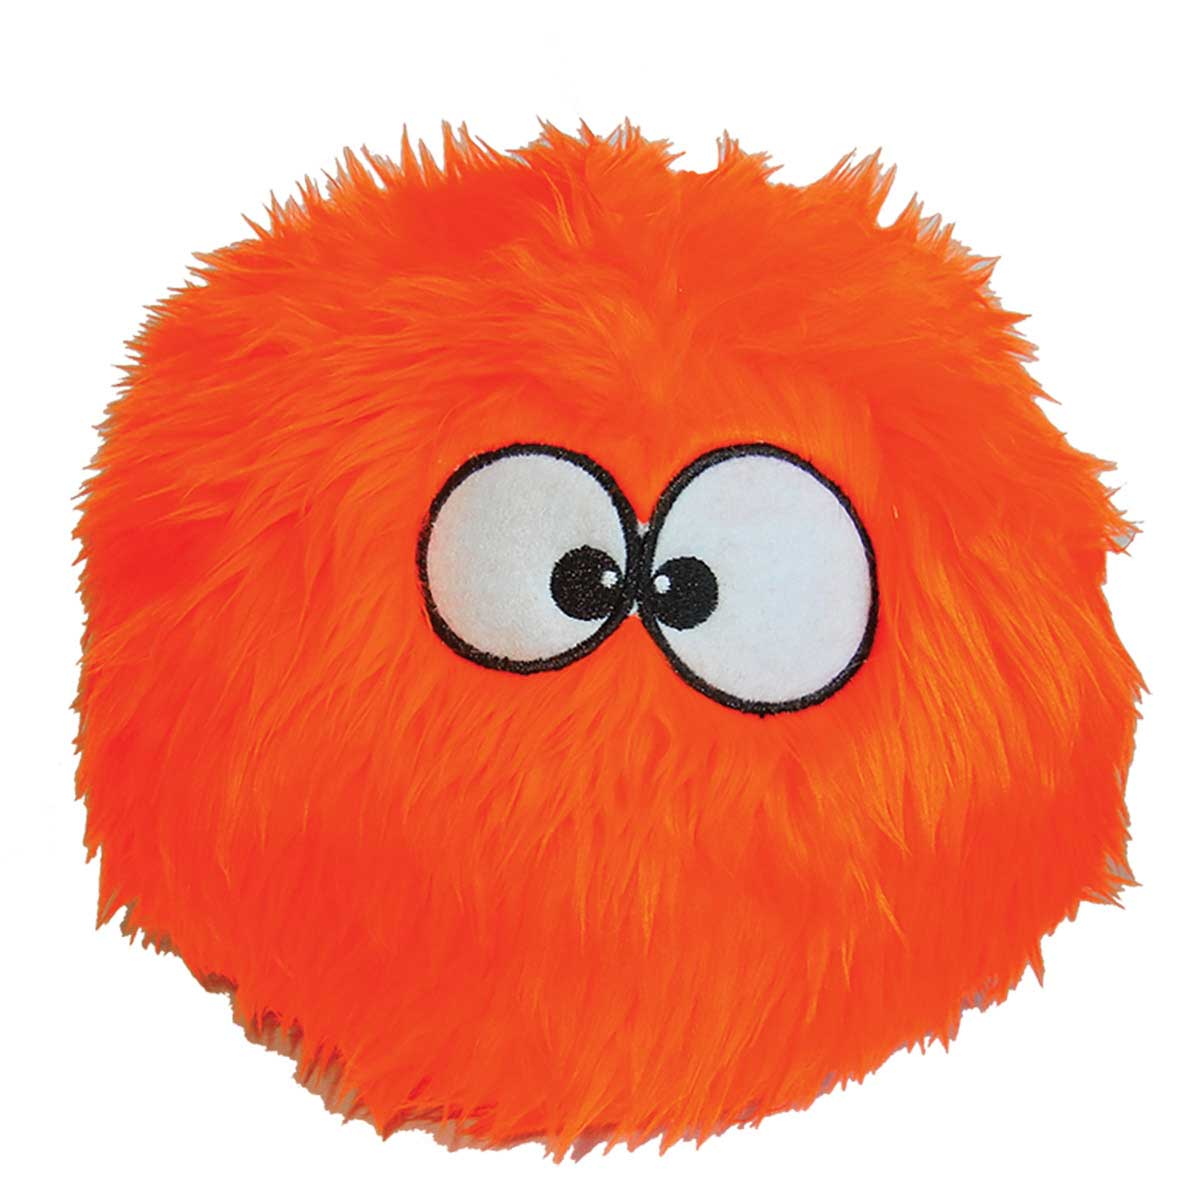 8 inch goDog Large Orange Furballz Toy for Dogs